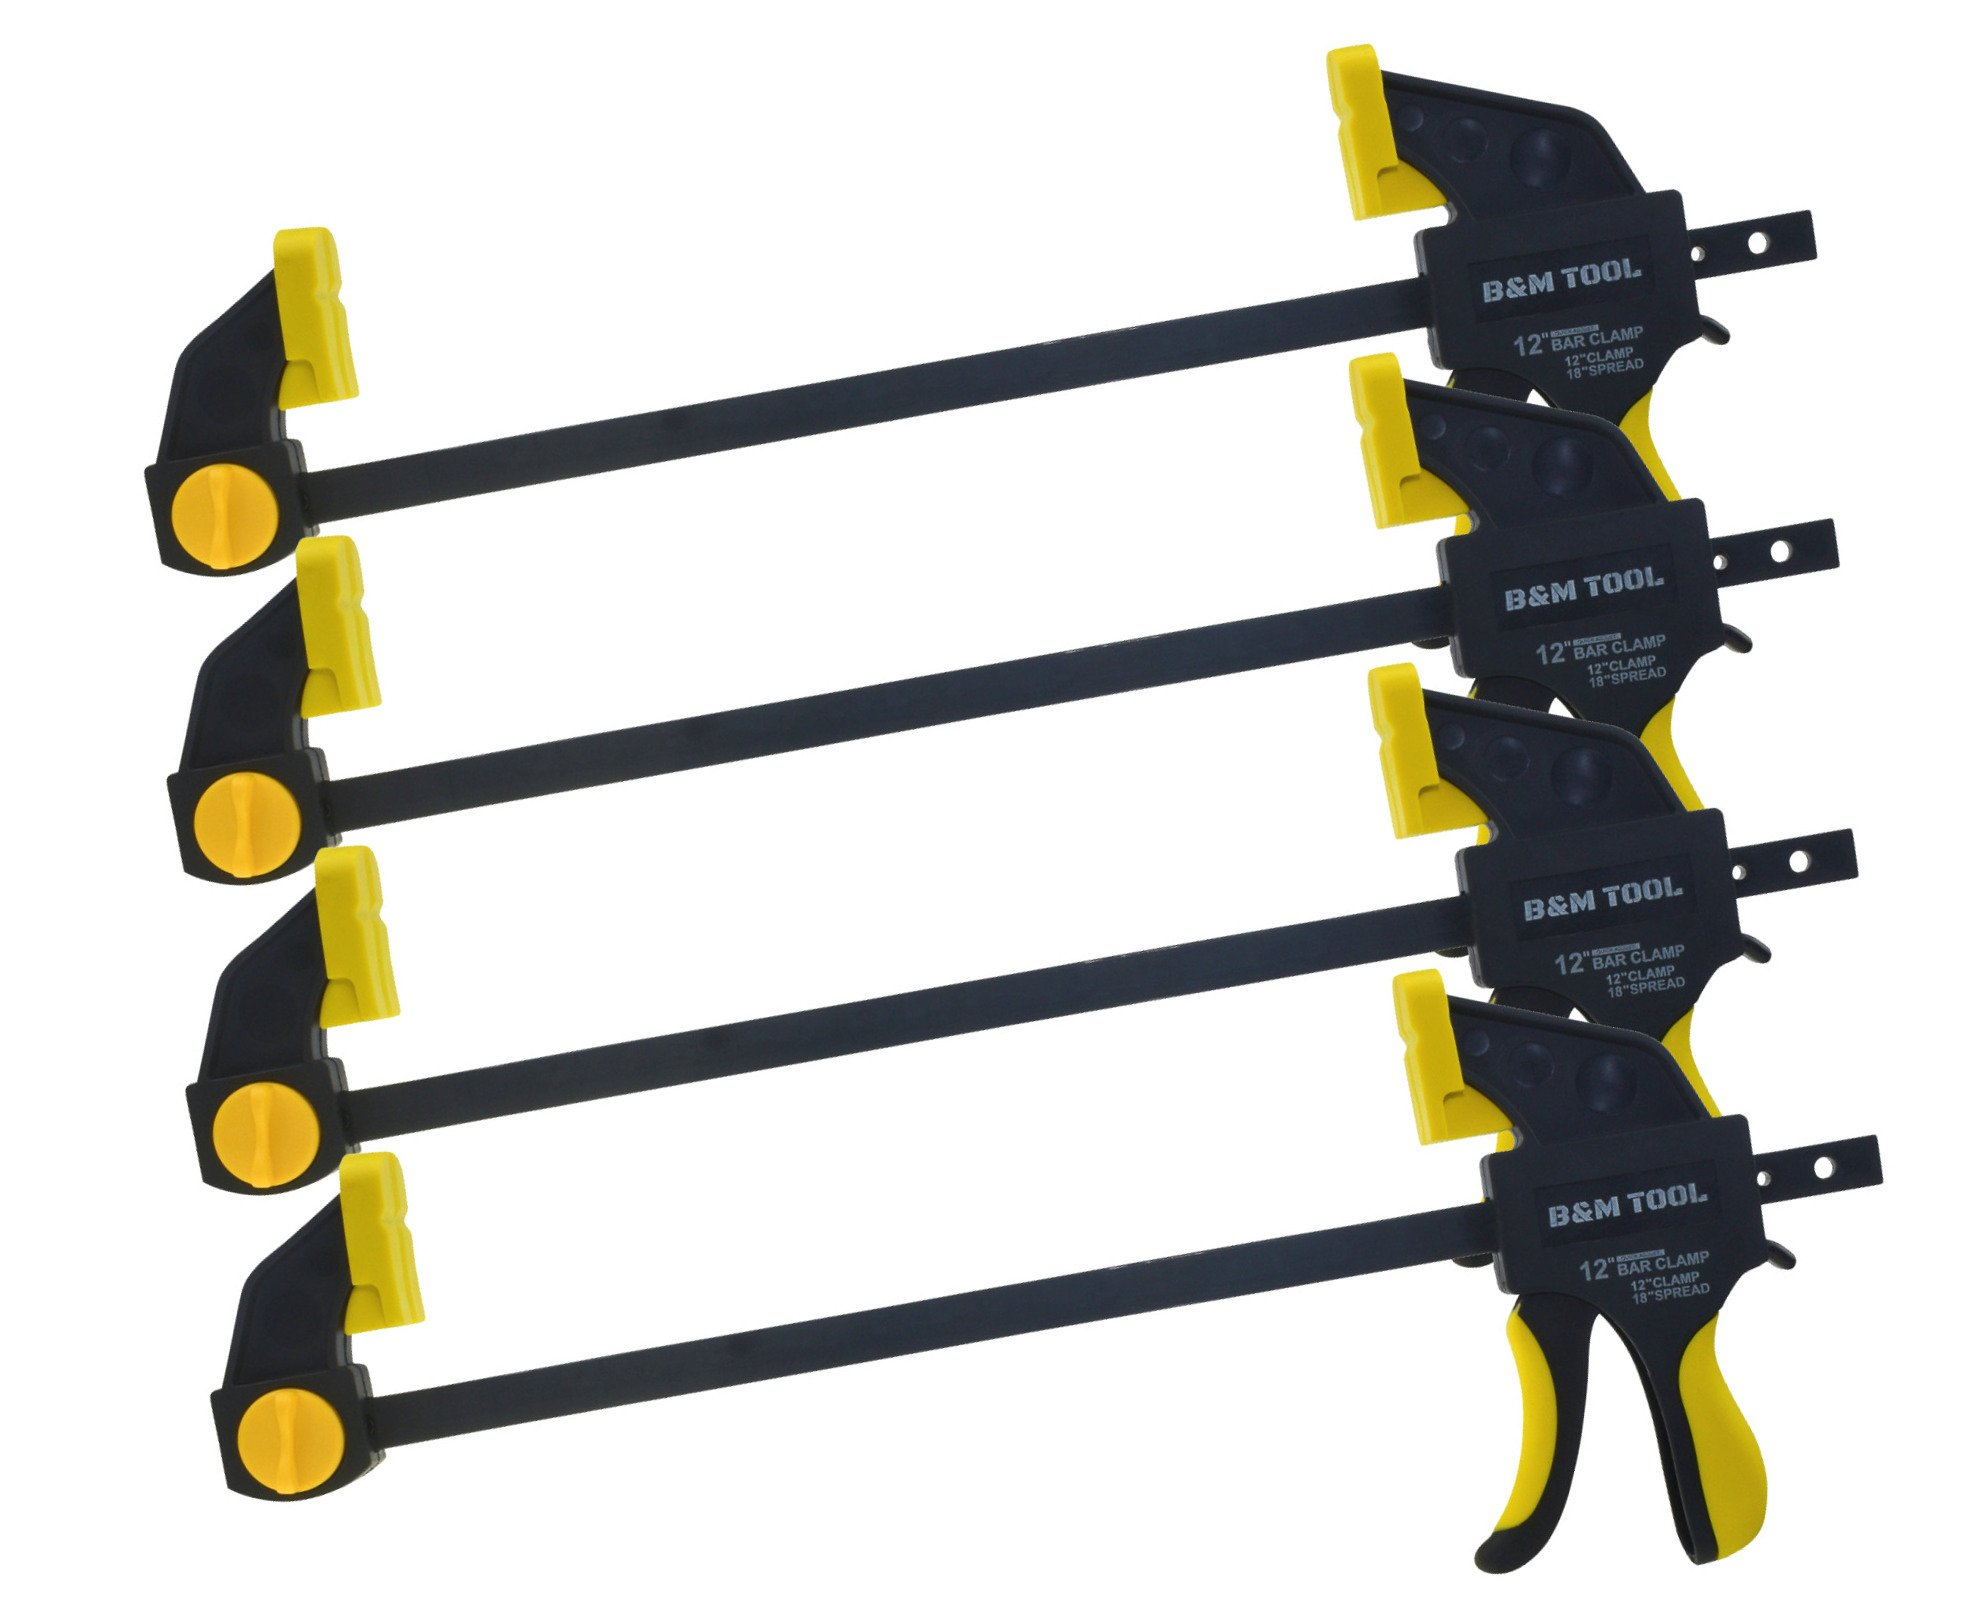 B&M TOOL Ratchet Bar Clamp and Spreader (12 Inch – 4 Pack)